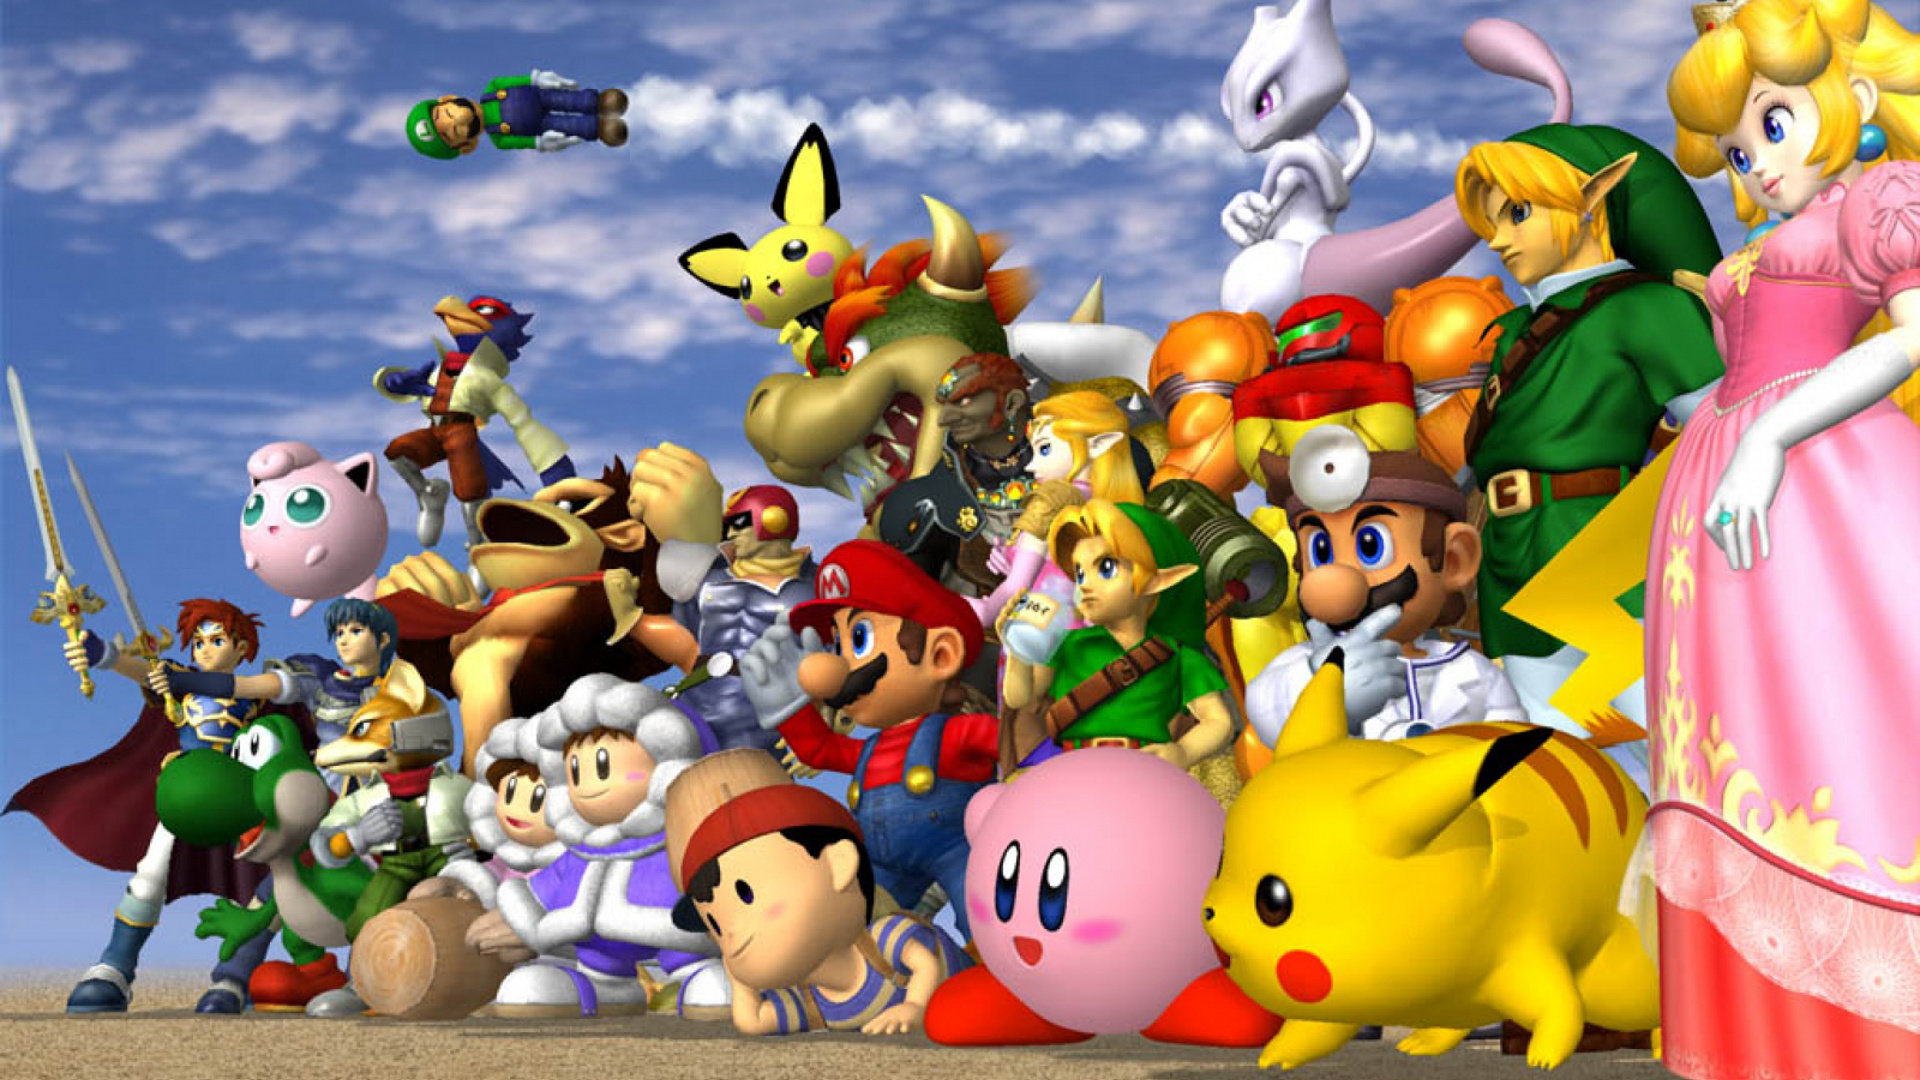 Super Smash Bros Melee Wallpapers 1920x1080 Full Hd 1080p